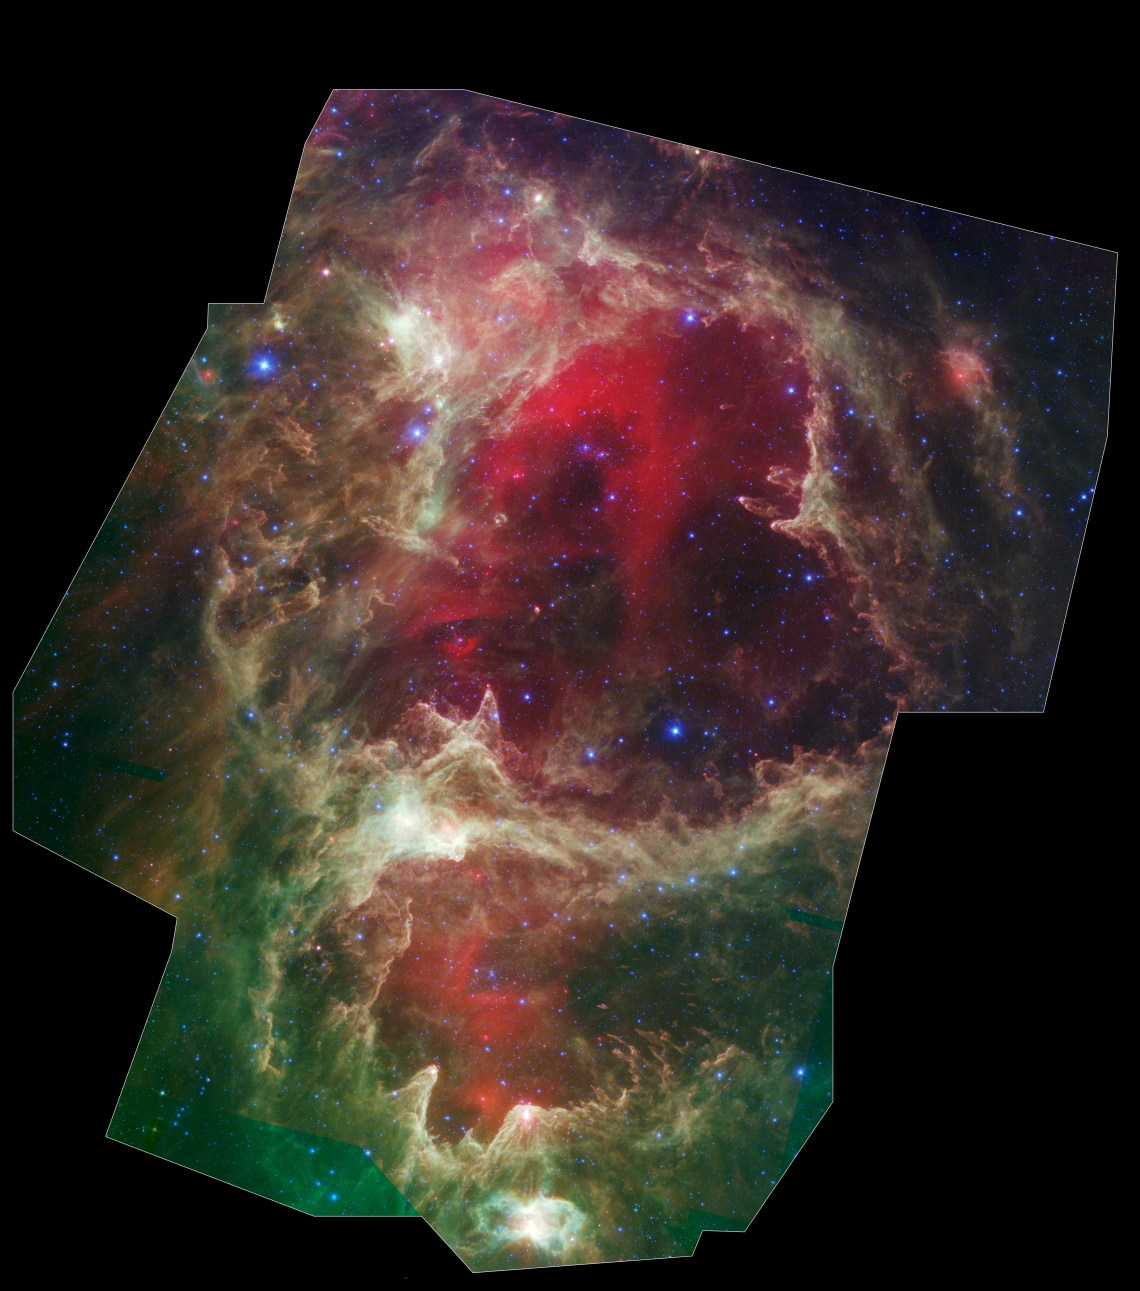 A Stellar Family Tree: Generations of stars can be seen in this view of a vast star-forming region dubbed W5. Massive stars at  the hearts of the cavities are thought to have blown away  surrounding material, triggering the birth of new stars. Credit: NASA/JPL-Caltech/Harvard-Smithsonian CfA